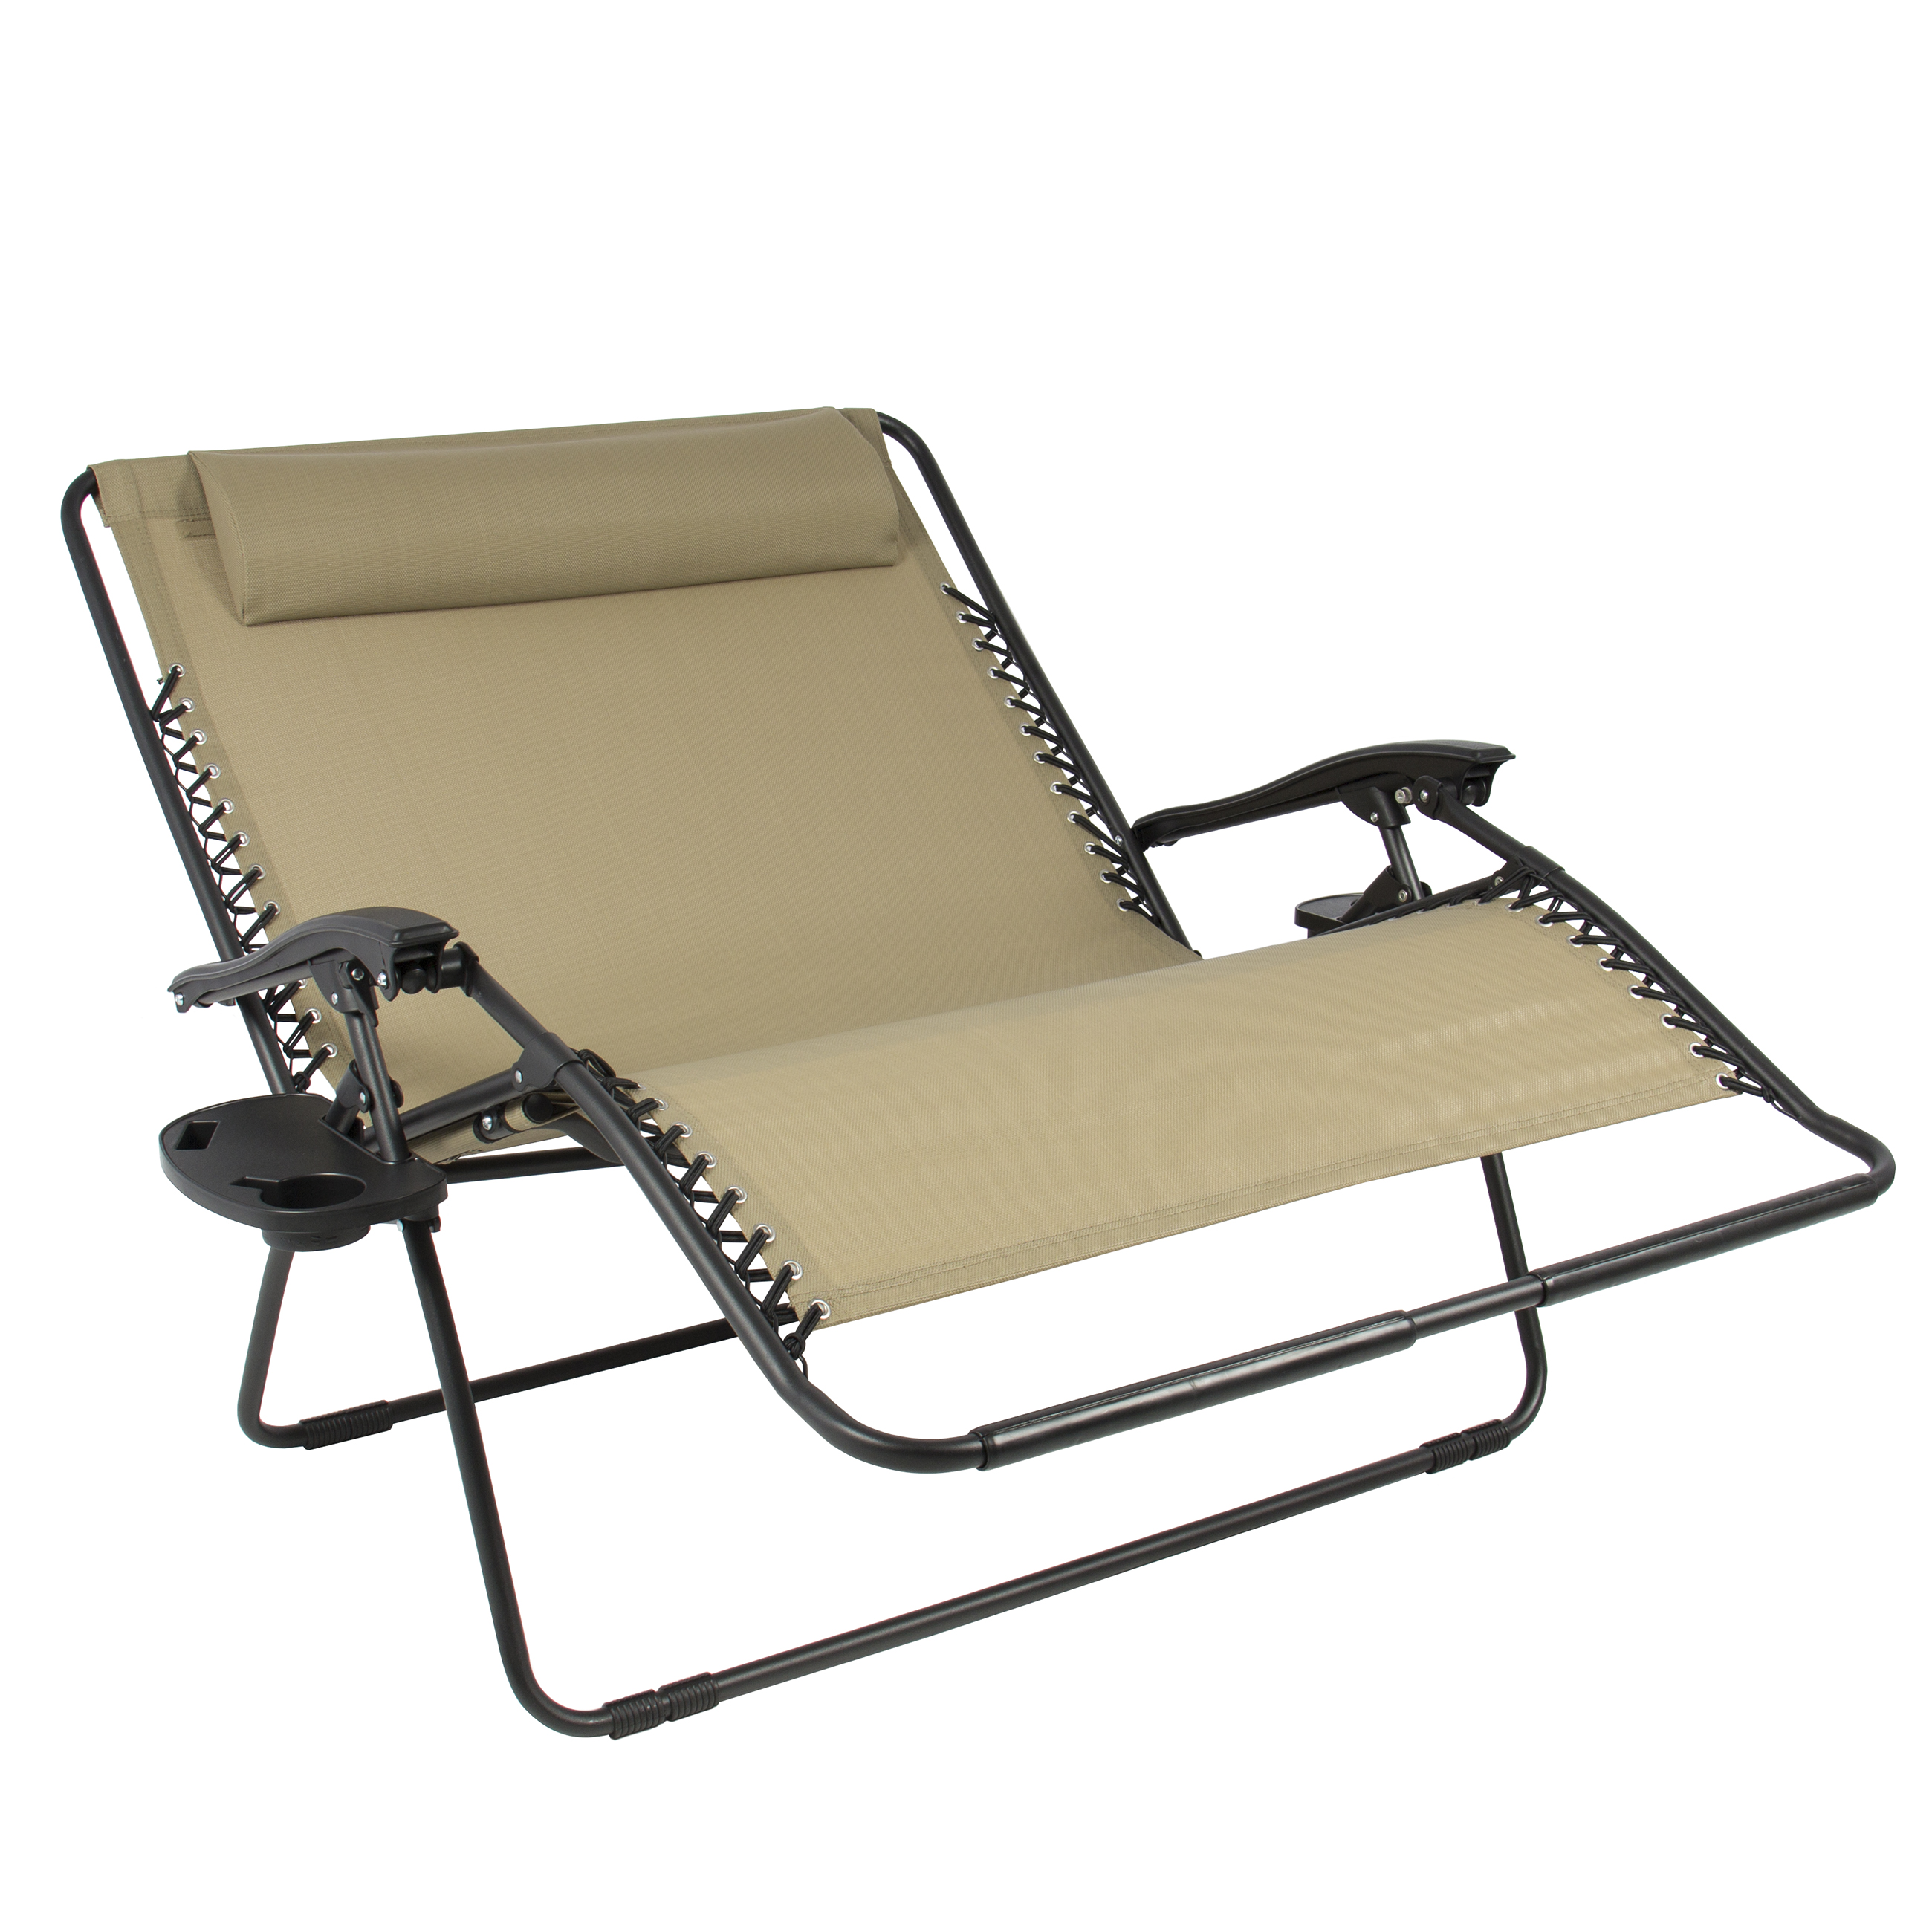 Best Choice Products 2 Person Double Wide Folding Zero Gravity Chair Patio Lounger W Cup Holders Beige